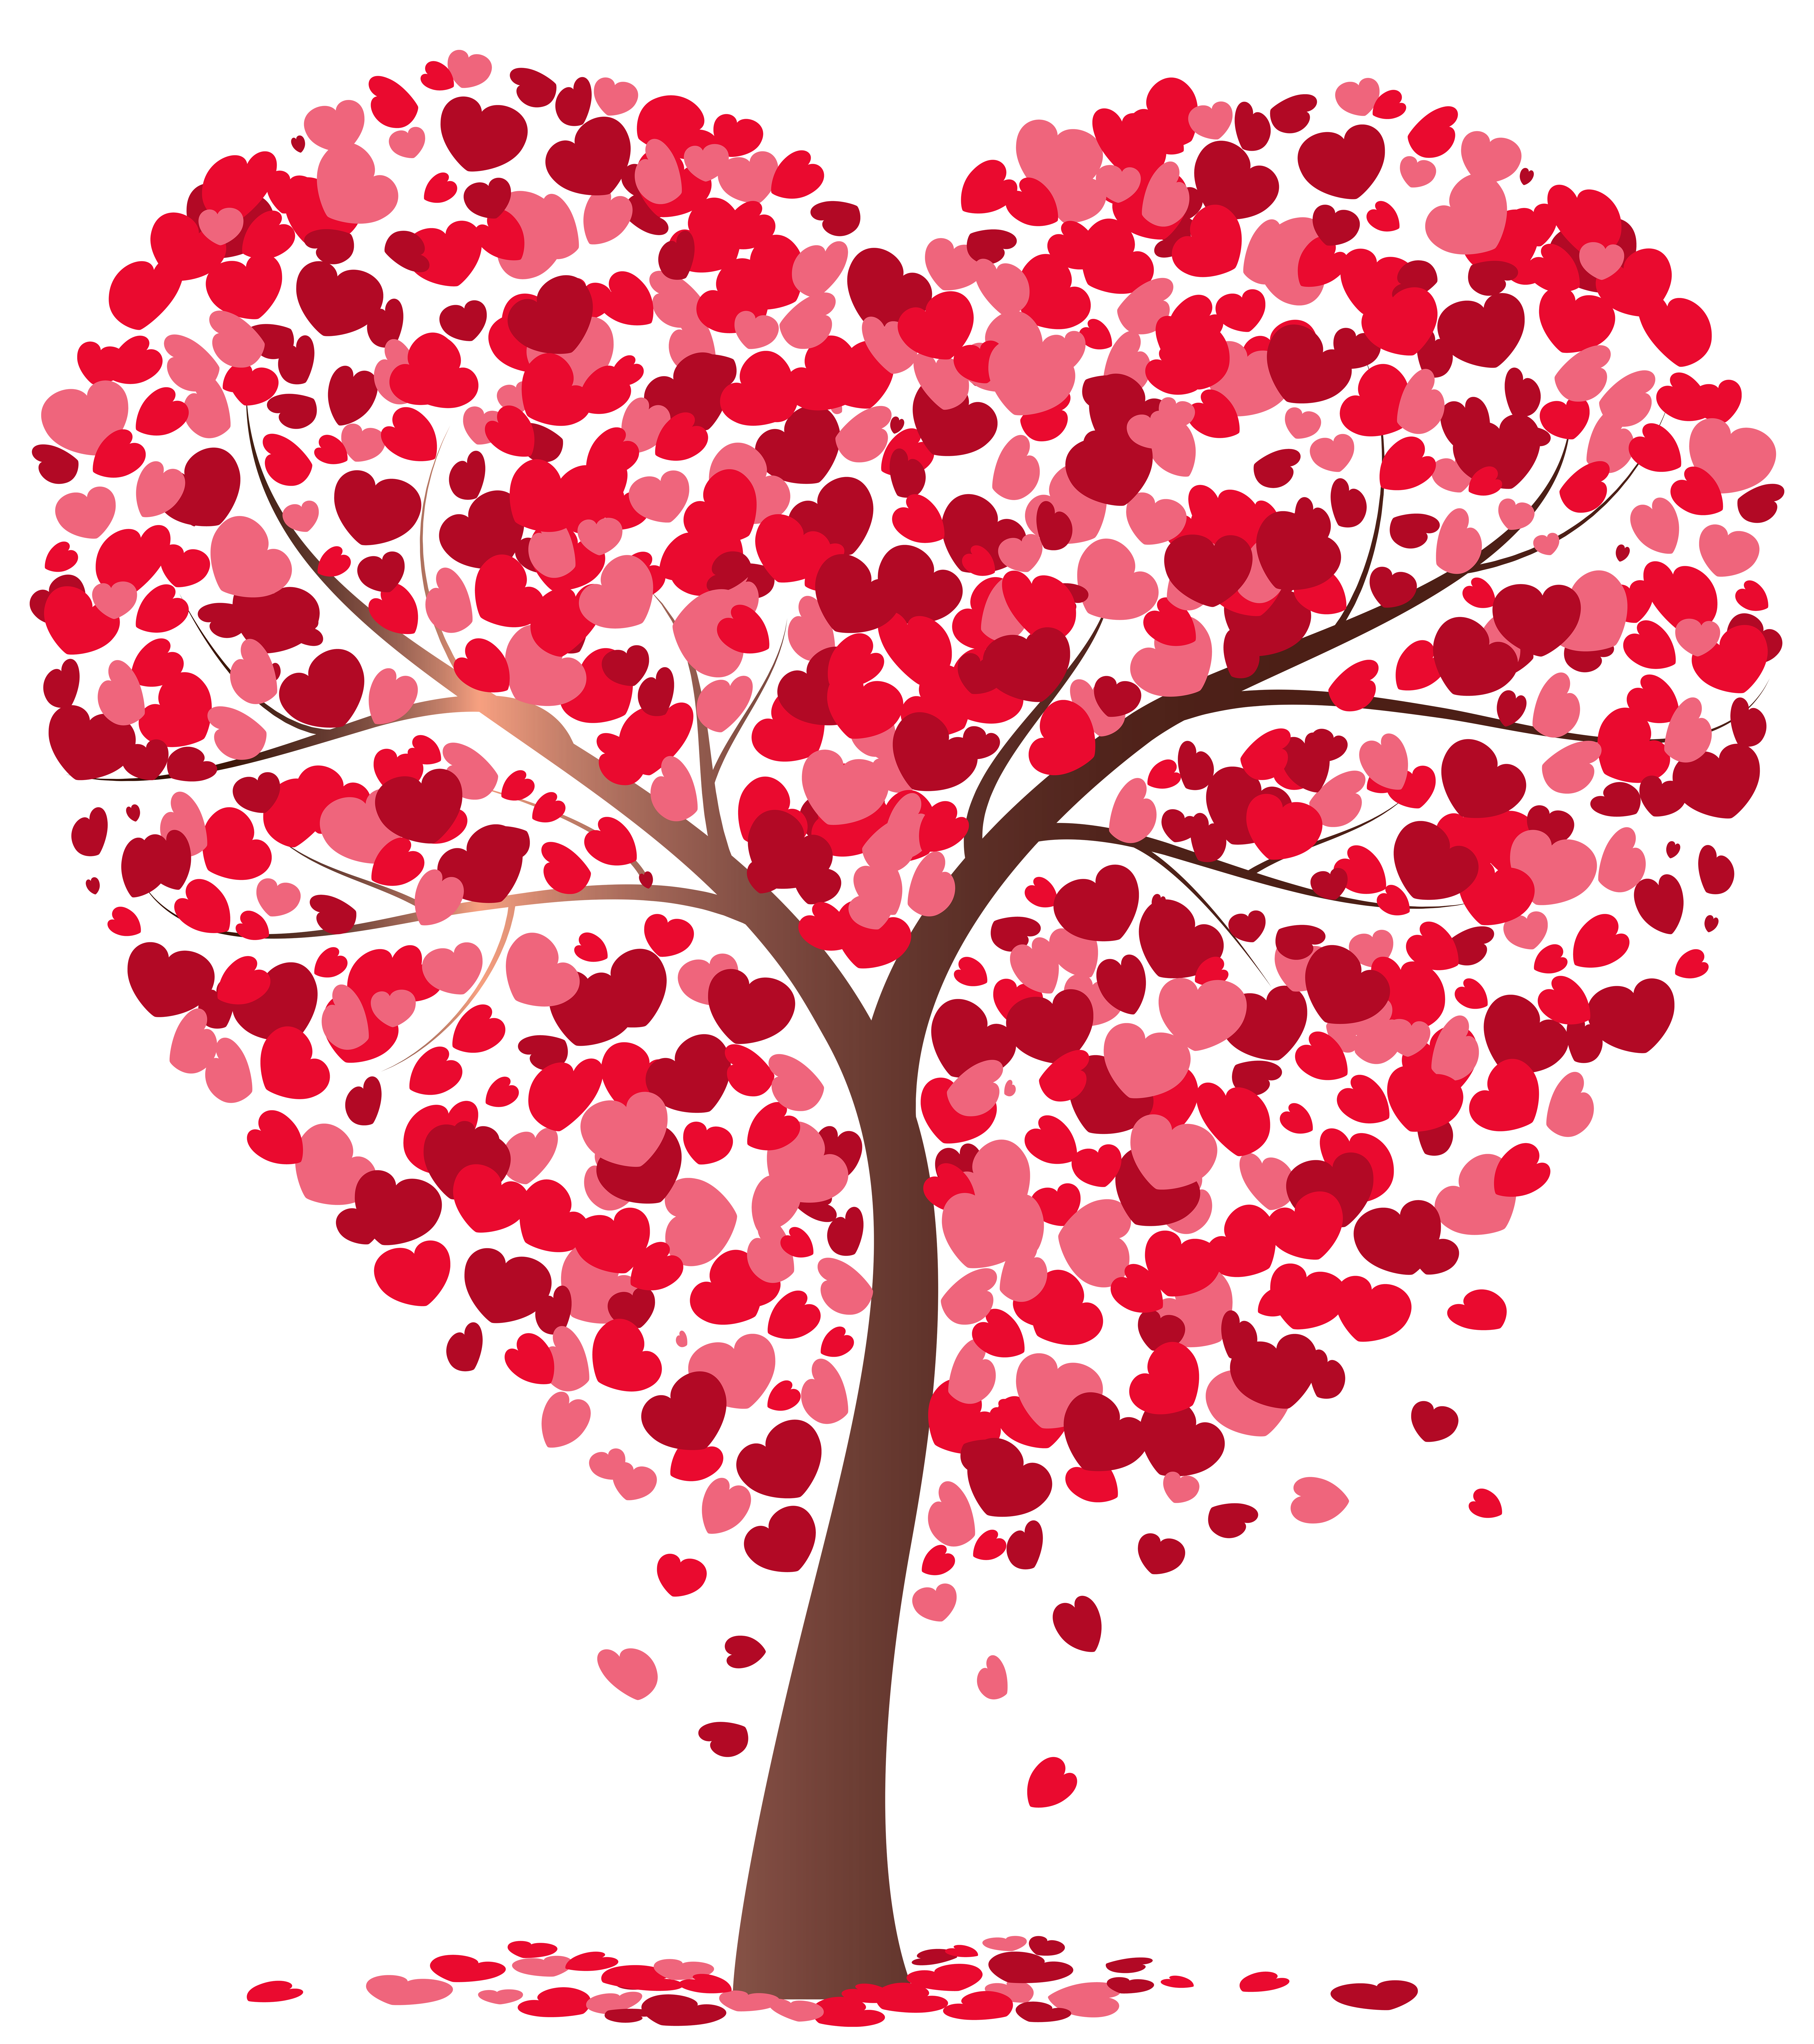 Heart Tree Transparent PNG Image Heart tree, Valentine